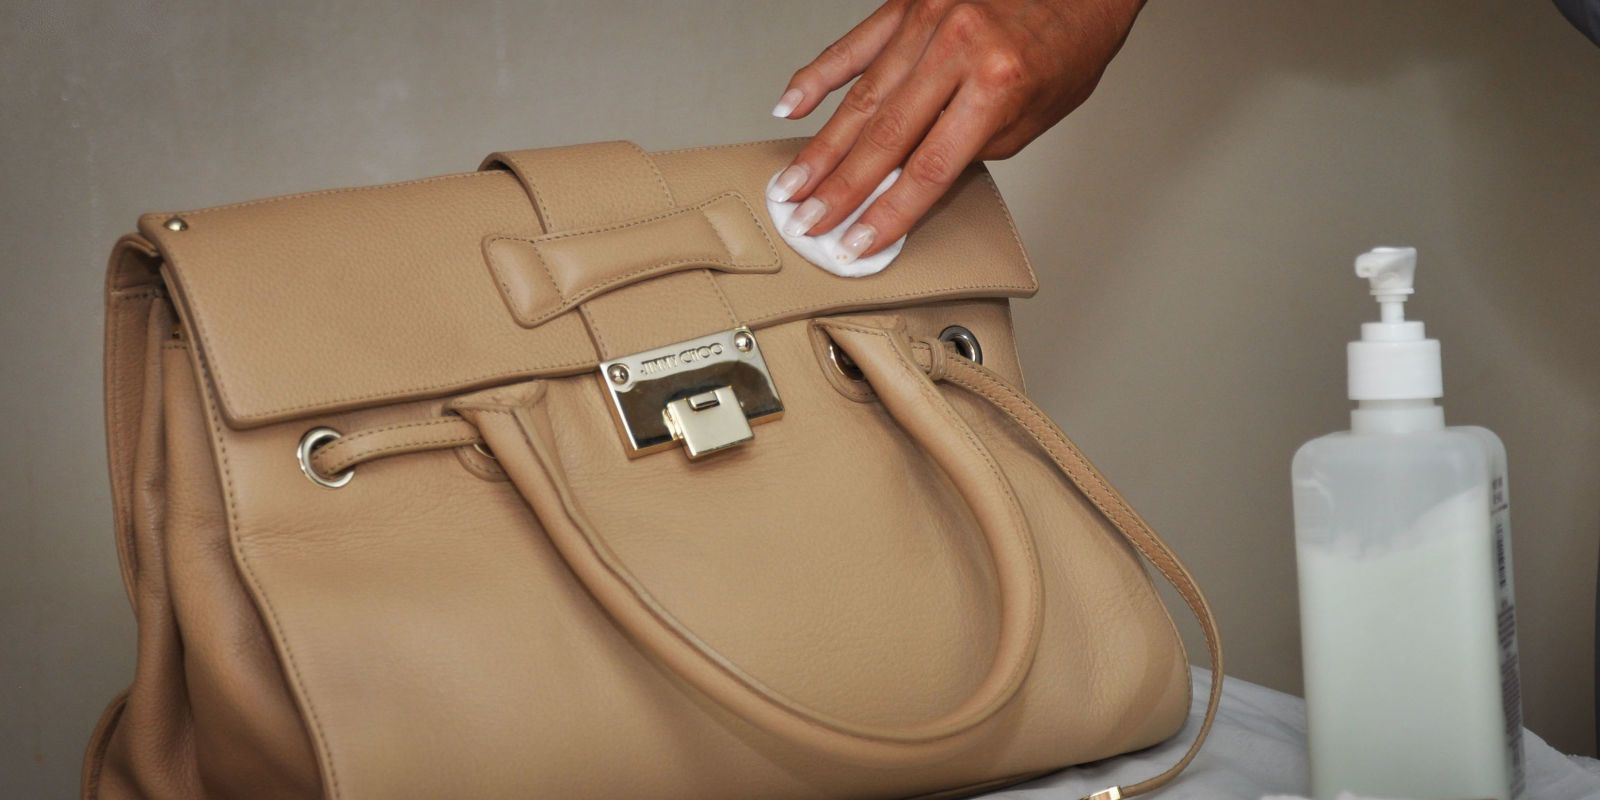 How To Clean A Leather Handbag No 13 Is Something We Never Thought Of Handbagcleaning Leatherhandbags